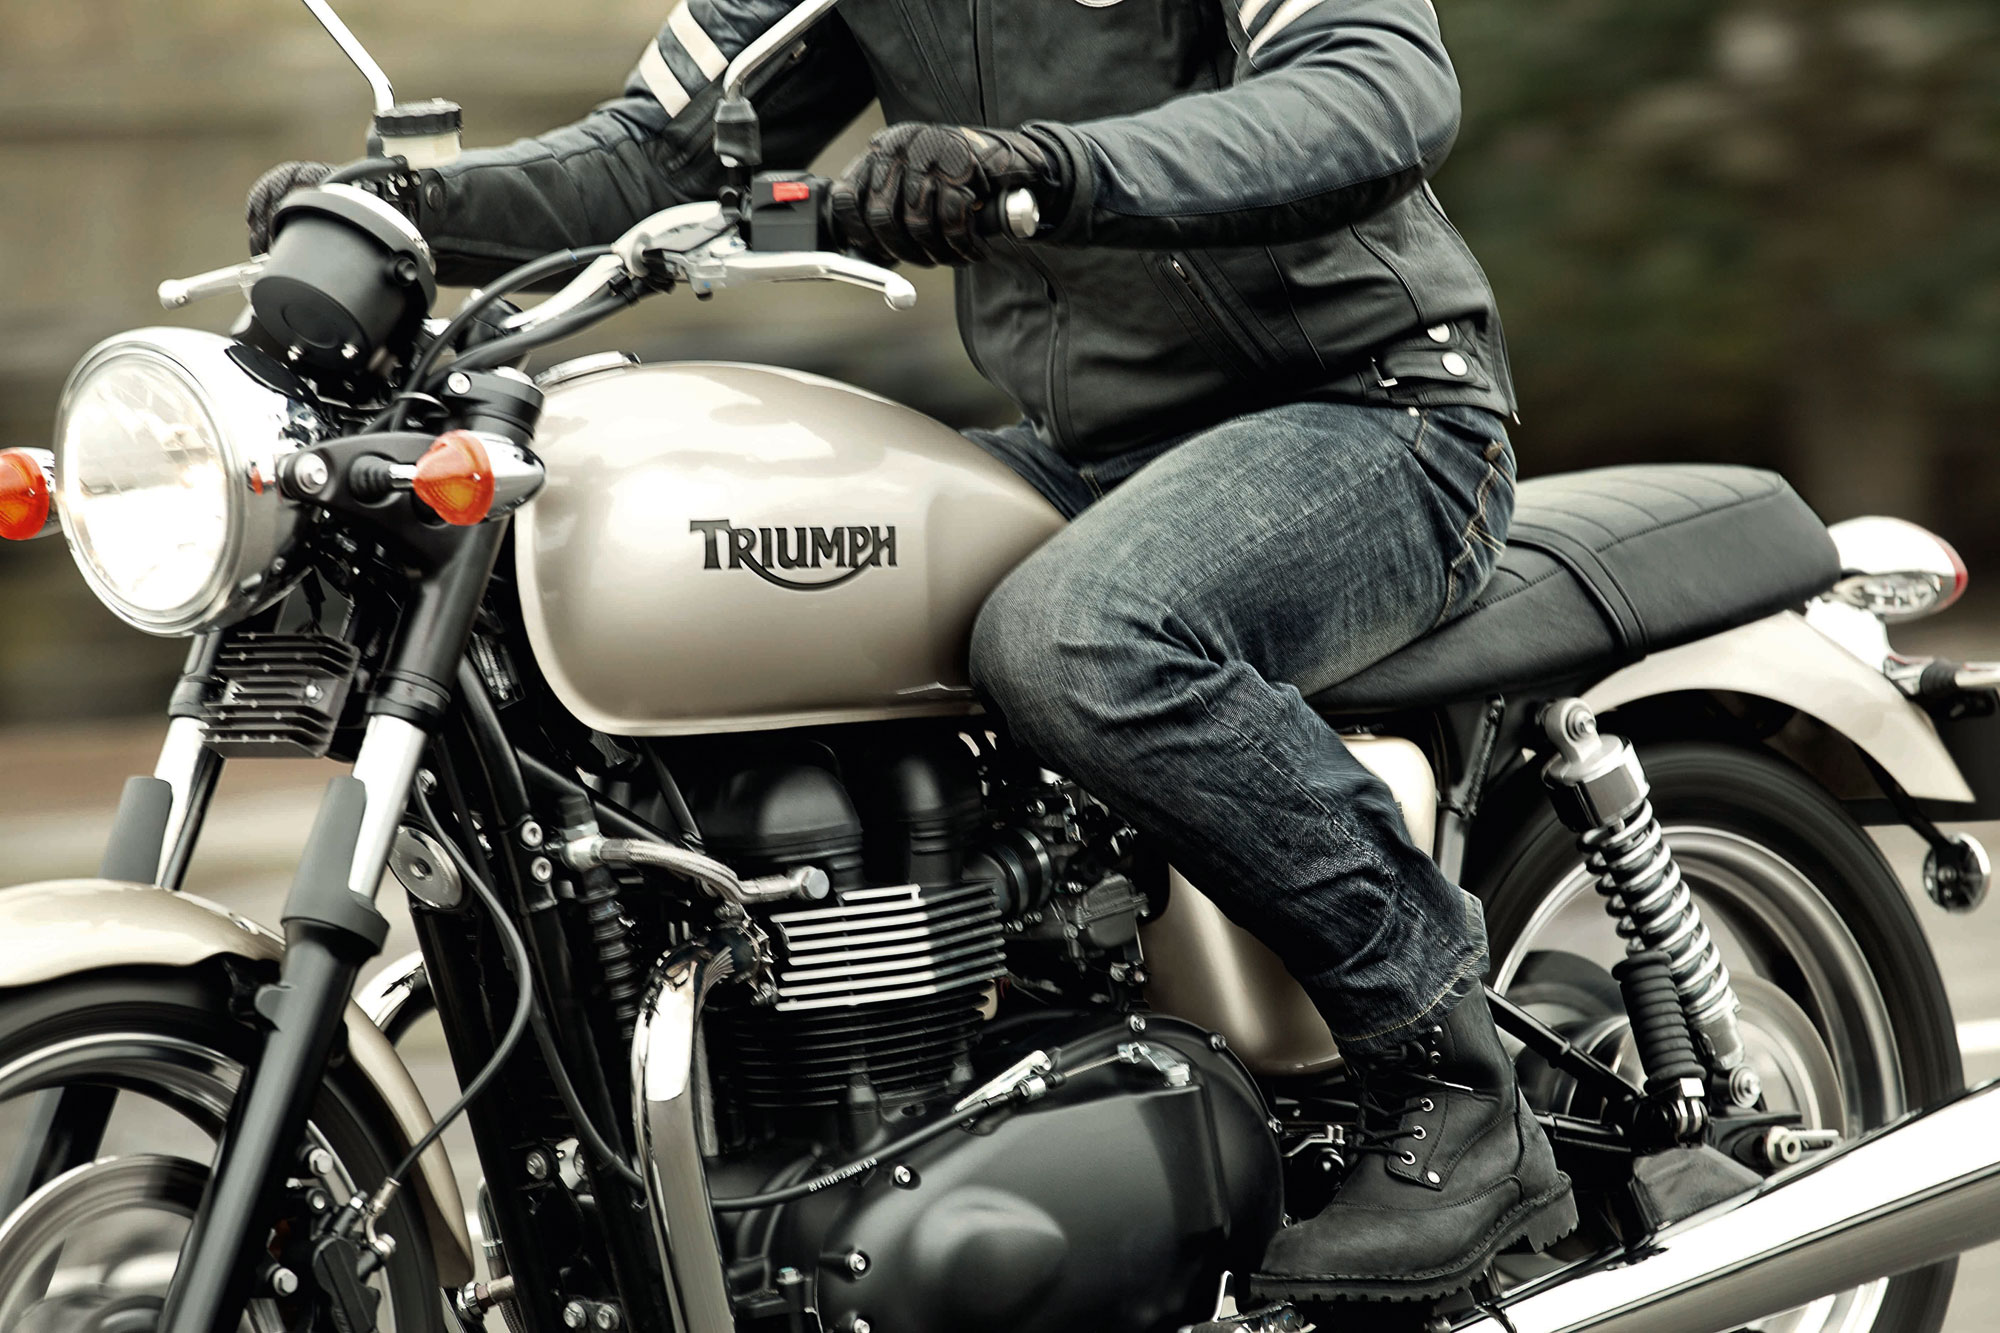 2012 Triumph Bonneville Review